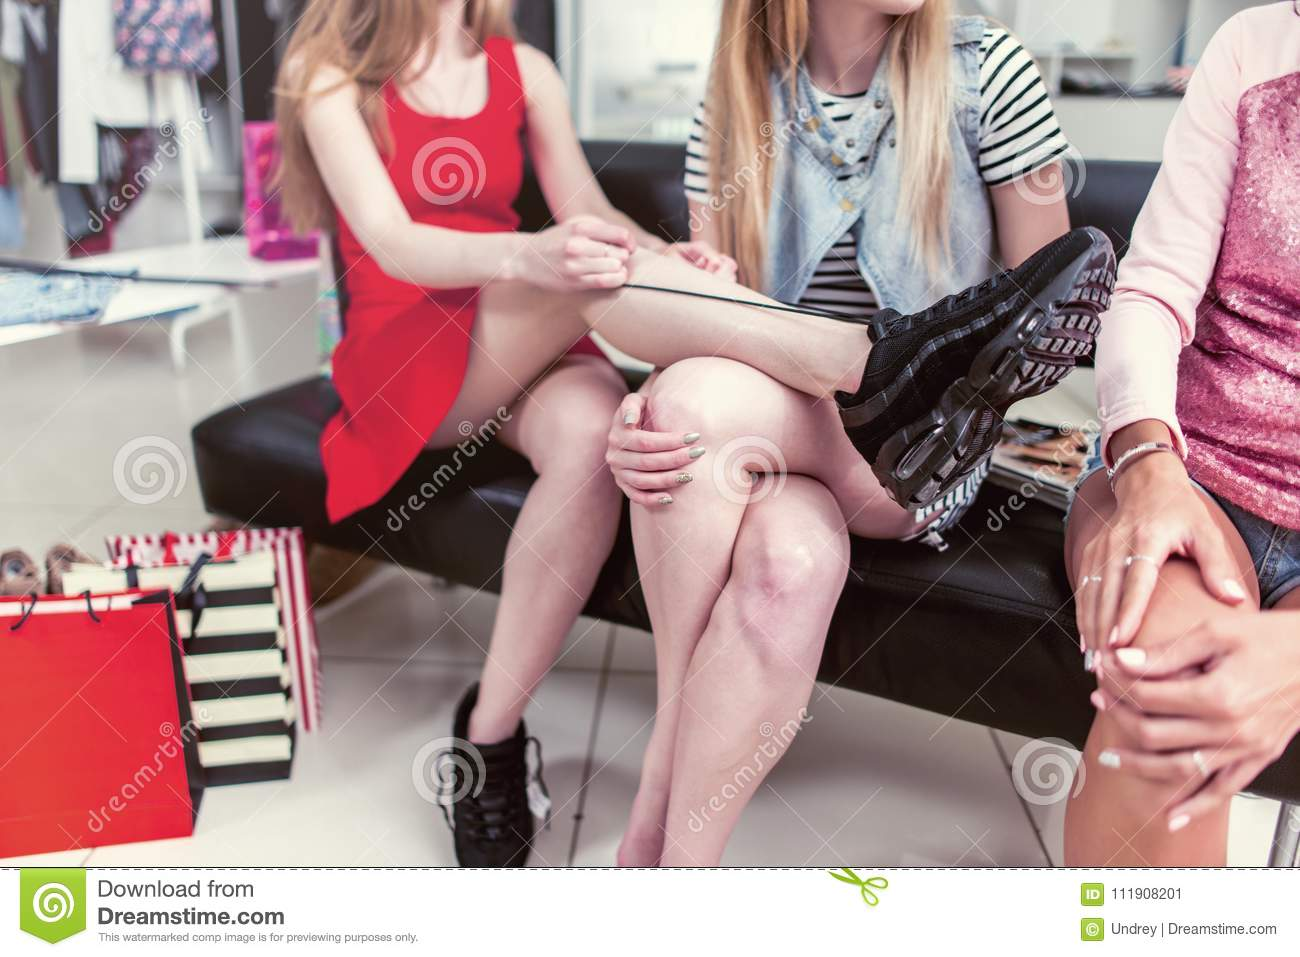 Cropped image of teen girls sitting on bench relaxing after shopping in clothing store. Young stylish woman tying up new